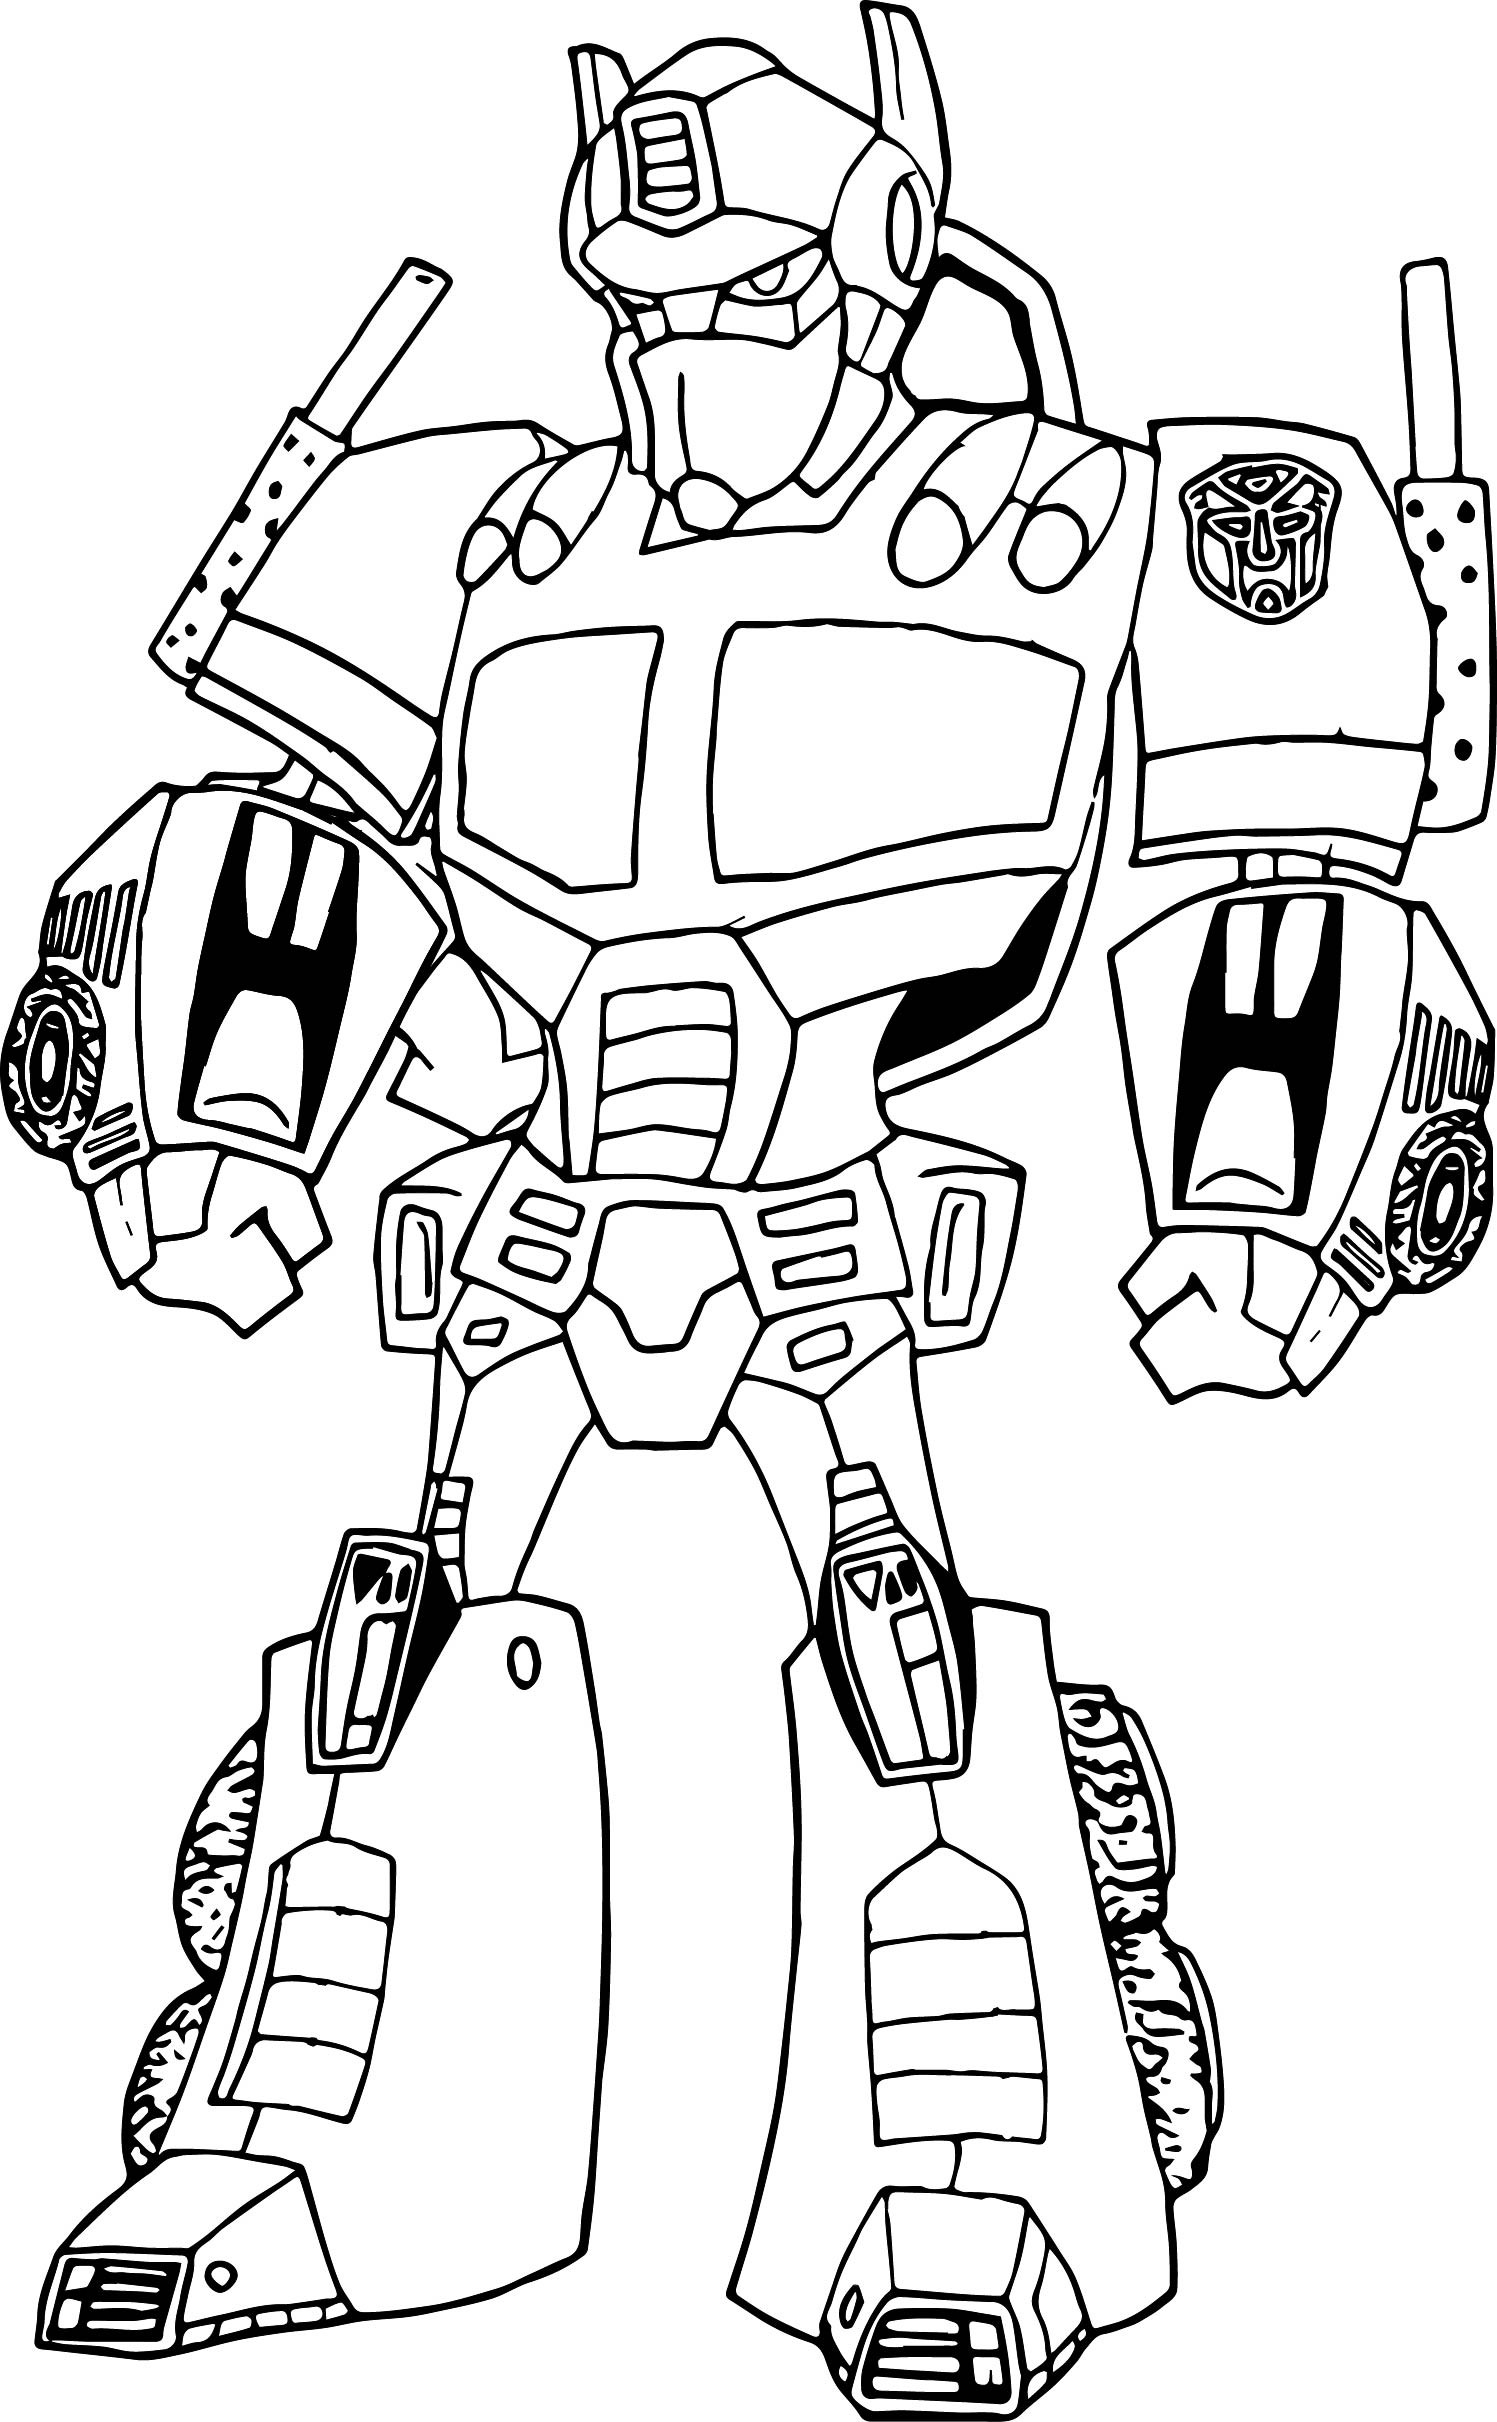 Fighting Robot Coloring Pages At Getdrawings